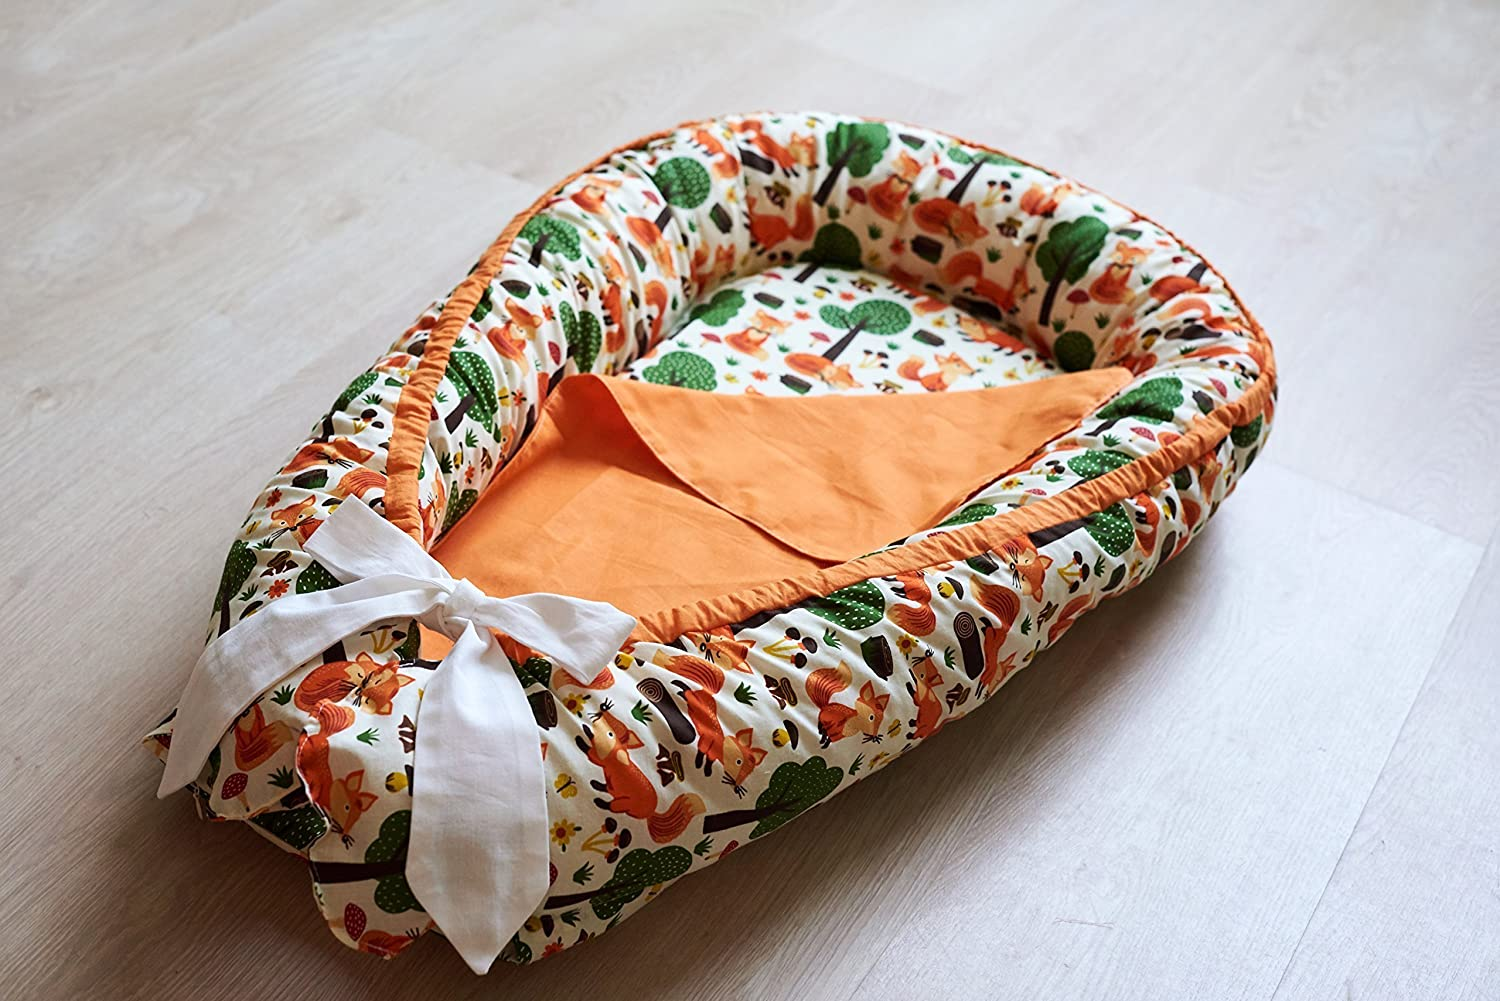 Baby Nest Snuggle Nest Cotton Baby Furniture Orange Fox